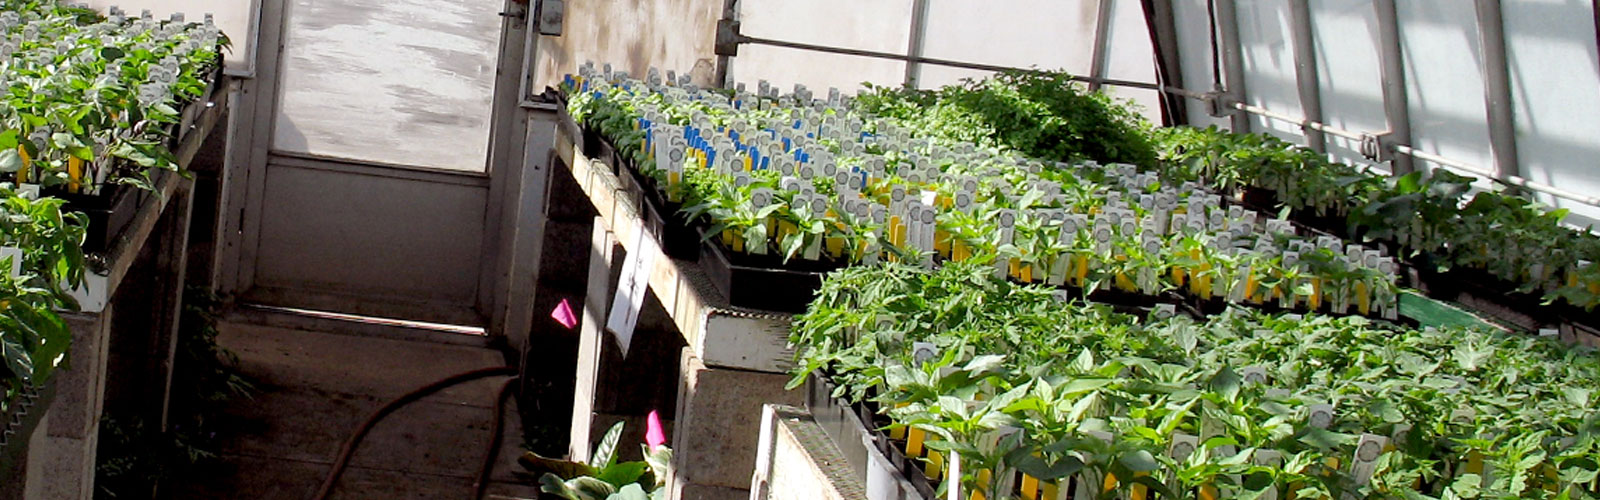 row of planter boxes in greenhouse